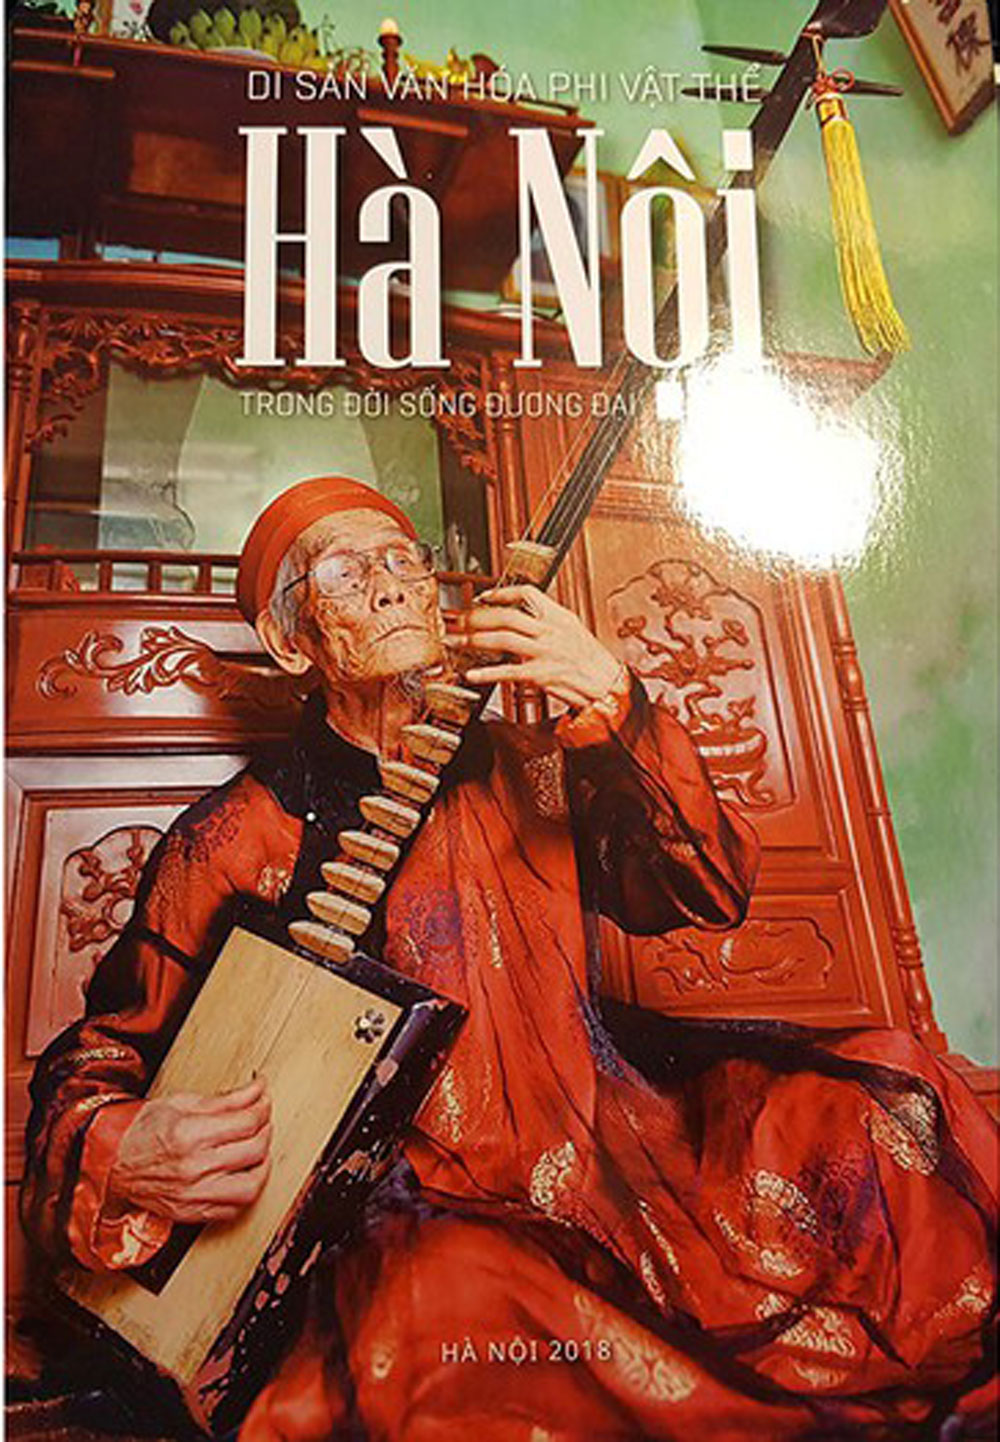 Hanoi, intangible cultural heritage,  Contemporary Life, priority preservation,  folklore linguistics, theatrical performances, local and global communities